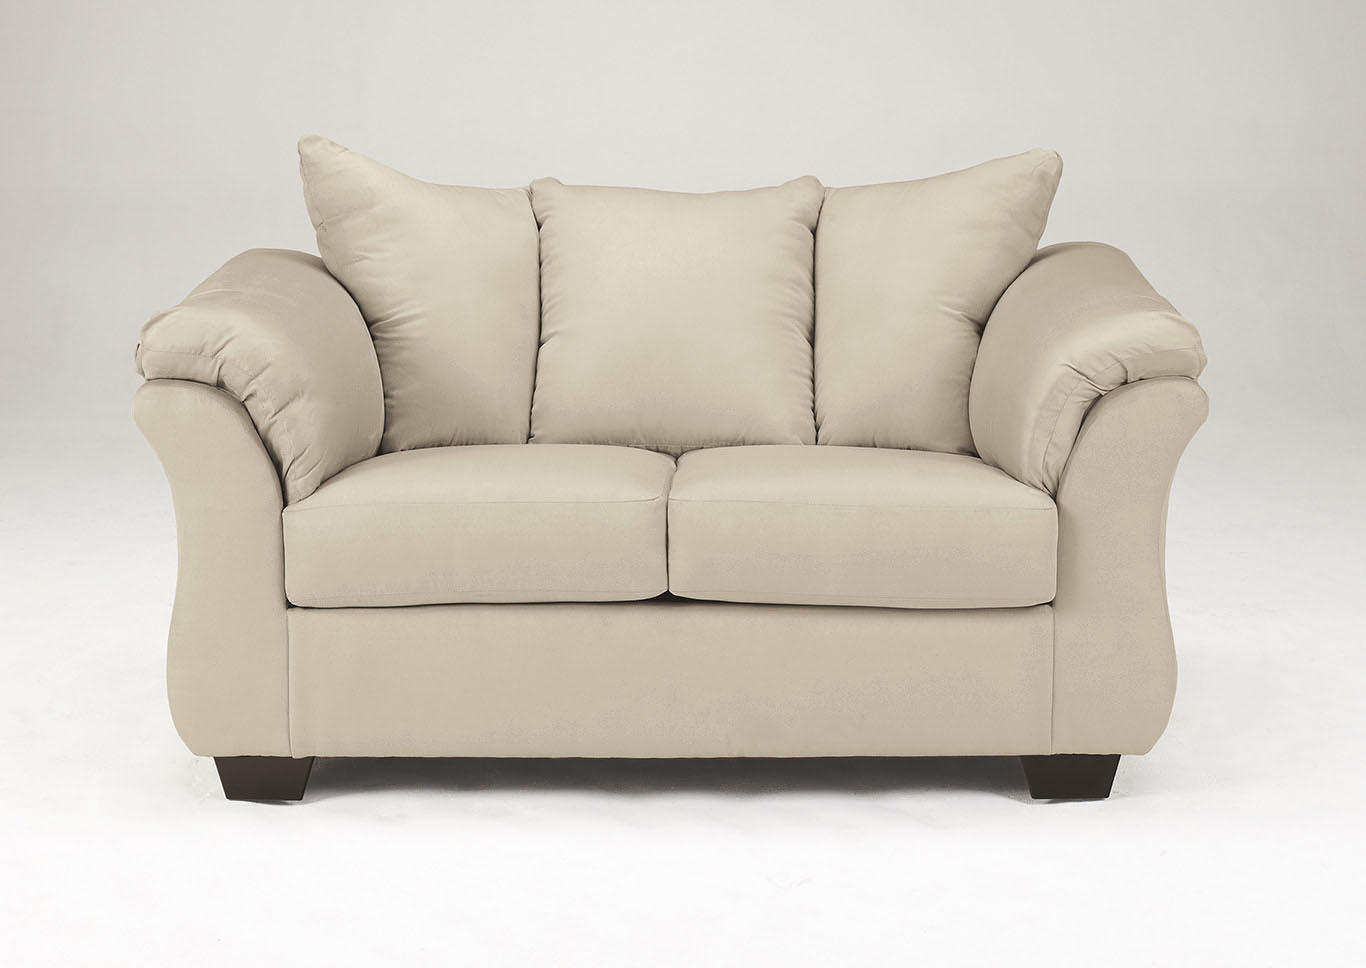 Darcy Stone Loveseat,Signature Design by Ashley